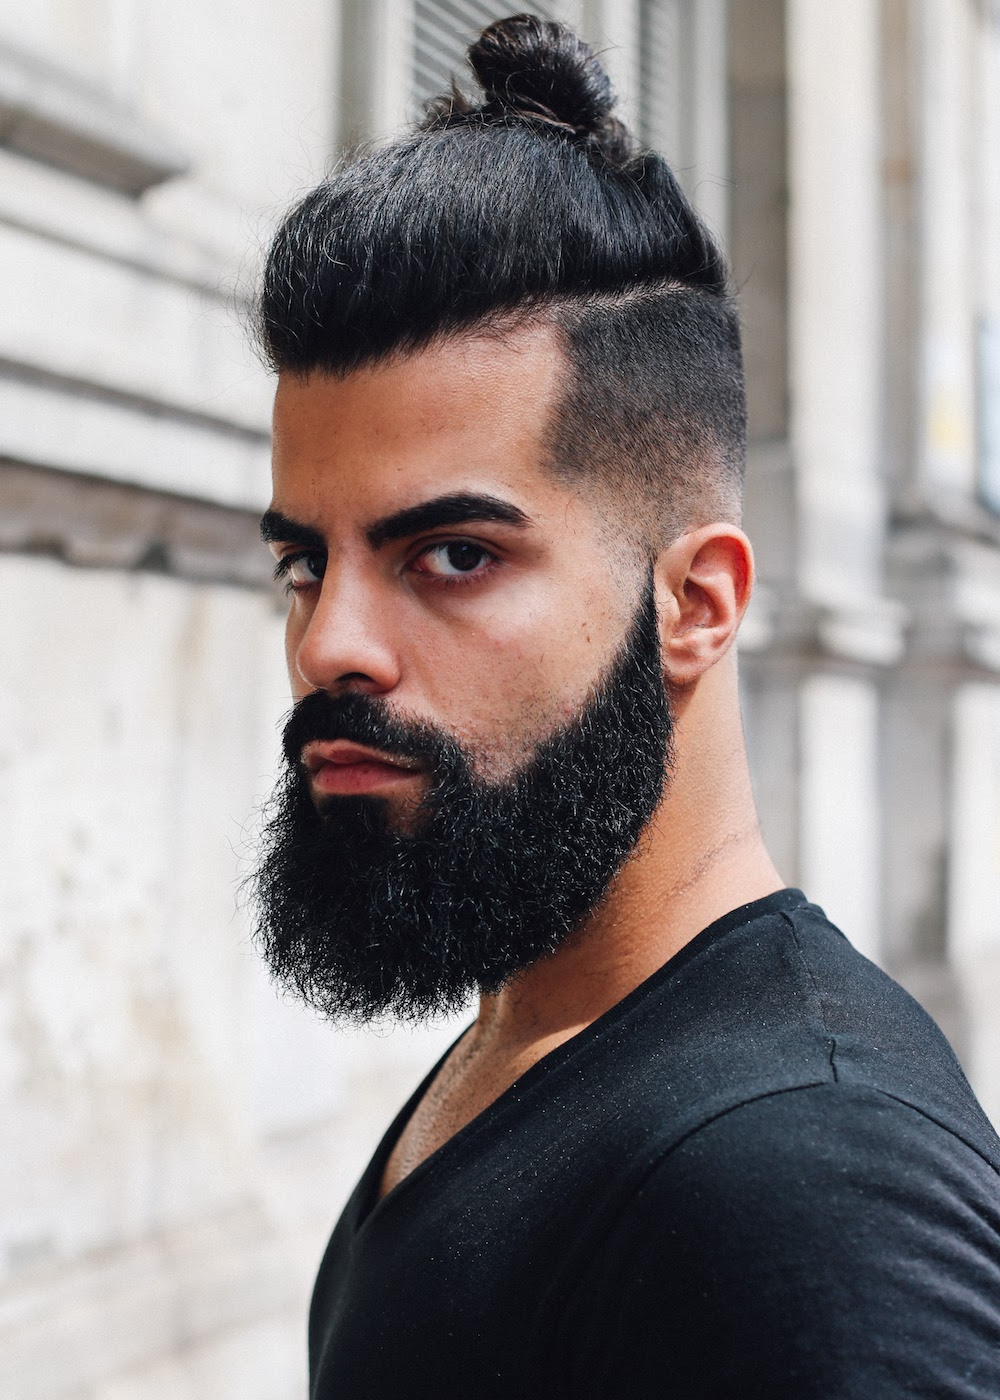 Well Liked Sharp Cut Mohawk Hairstyles Within 3 Beard Styles: Tips For Beard Care / Growth / Health (View 20 of 20)